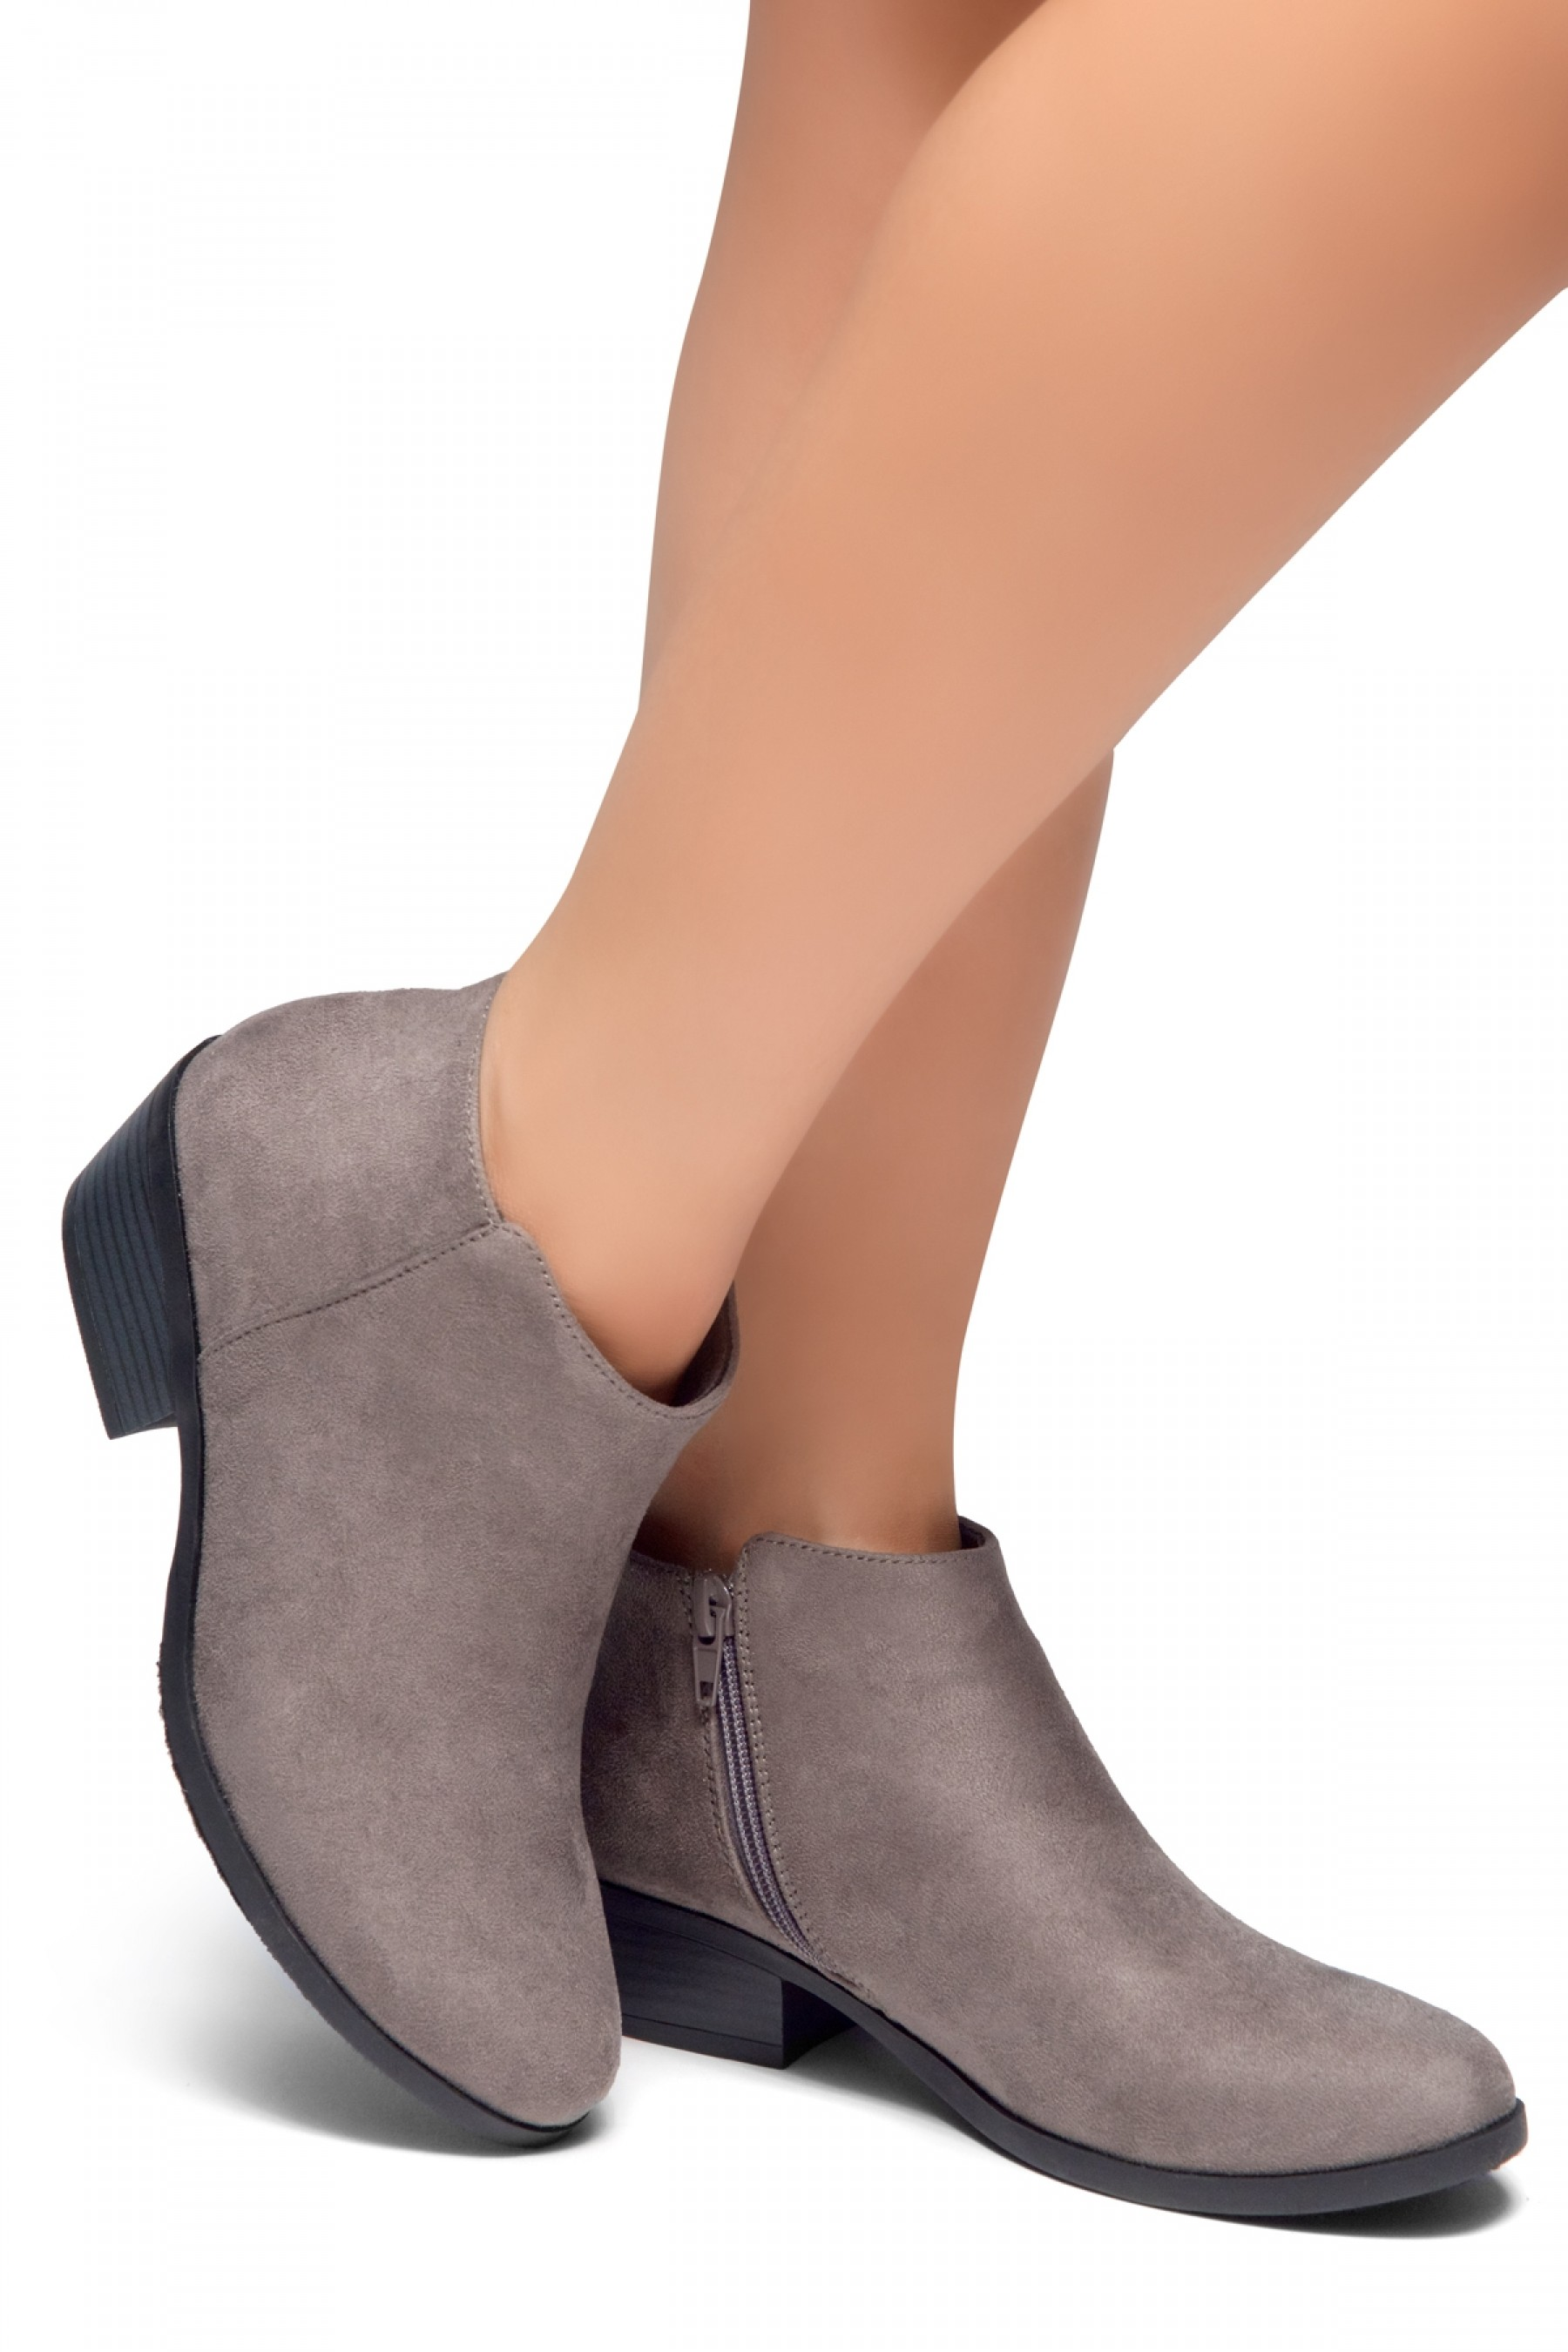 HerStyle Chatter- Low Stacked Heel Almond Toe Booties (Grey)